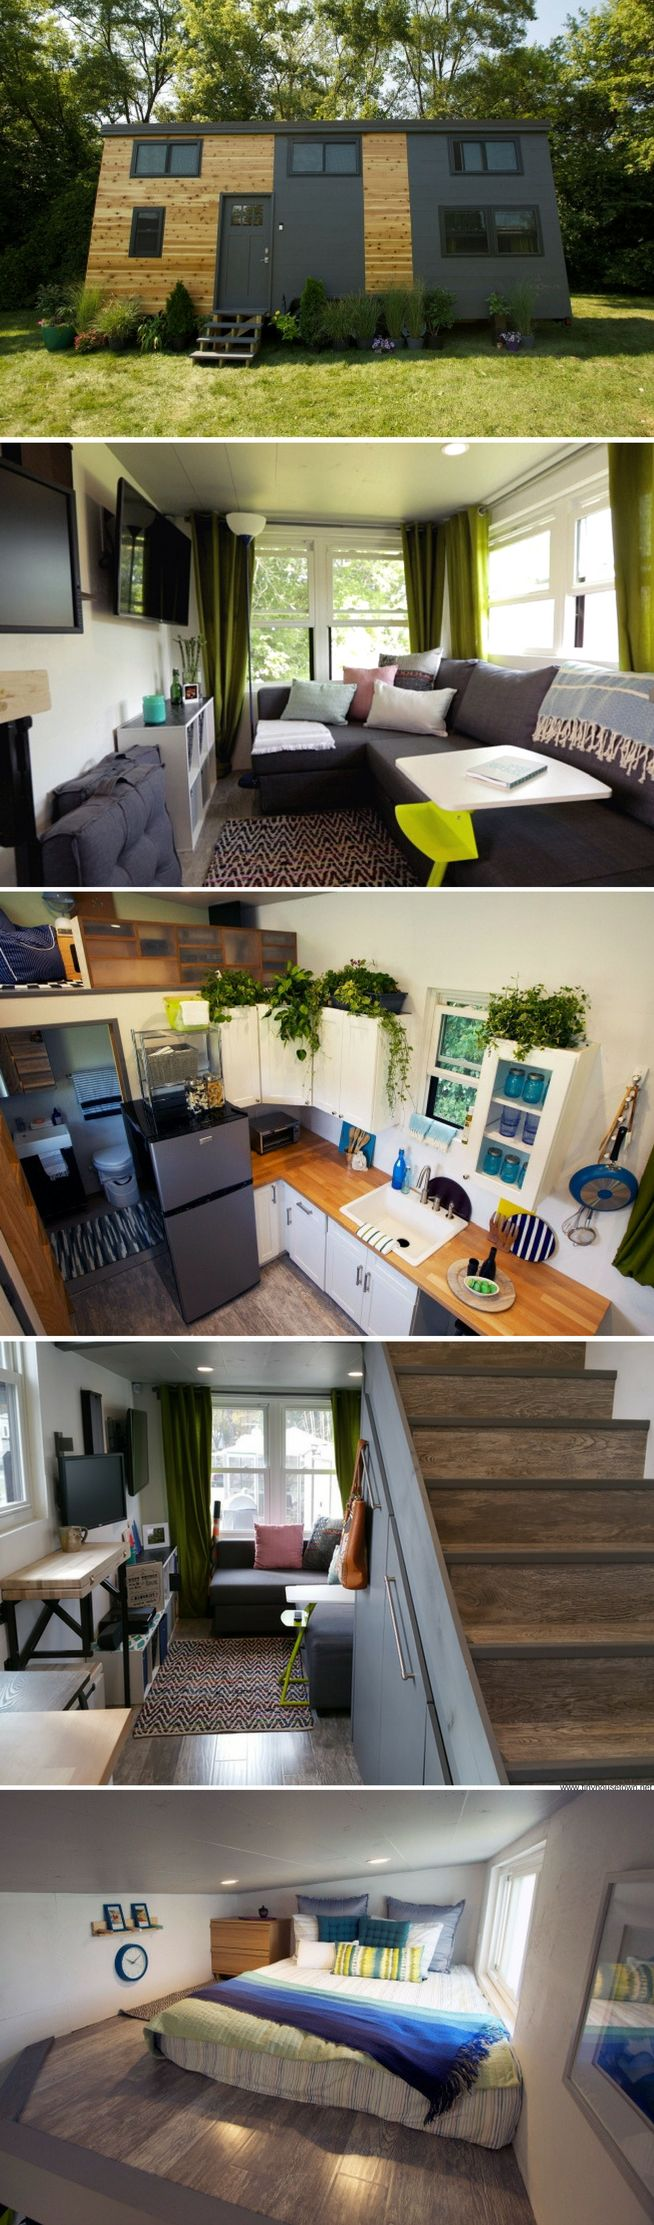 The Smart House: a 303 sq ft tiny home that was featured on Tiny House Nation